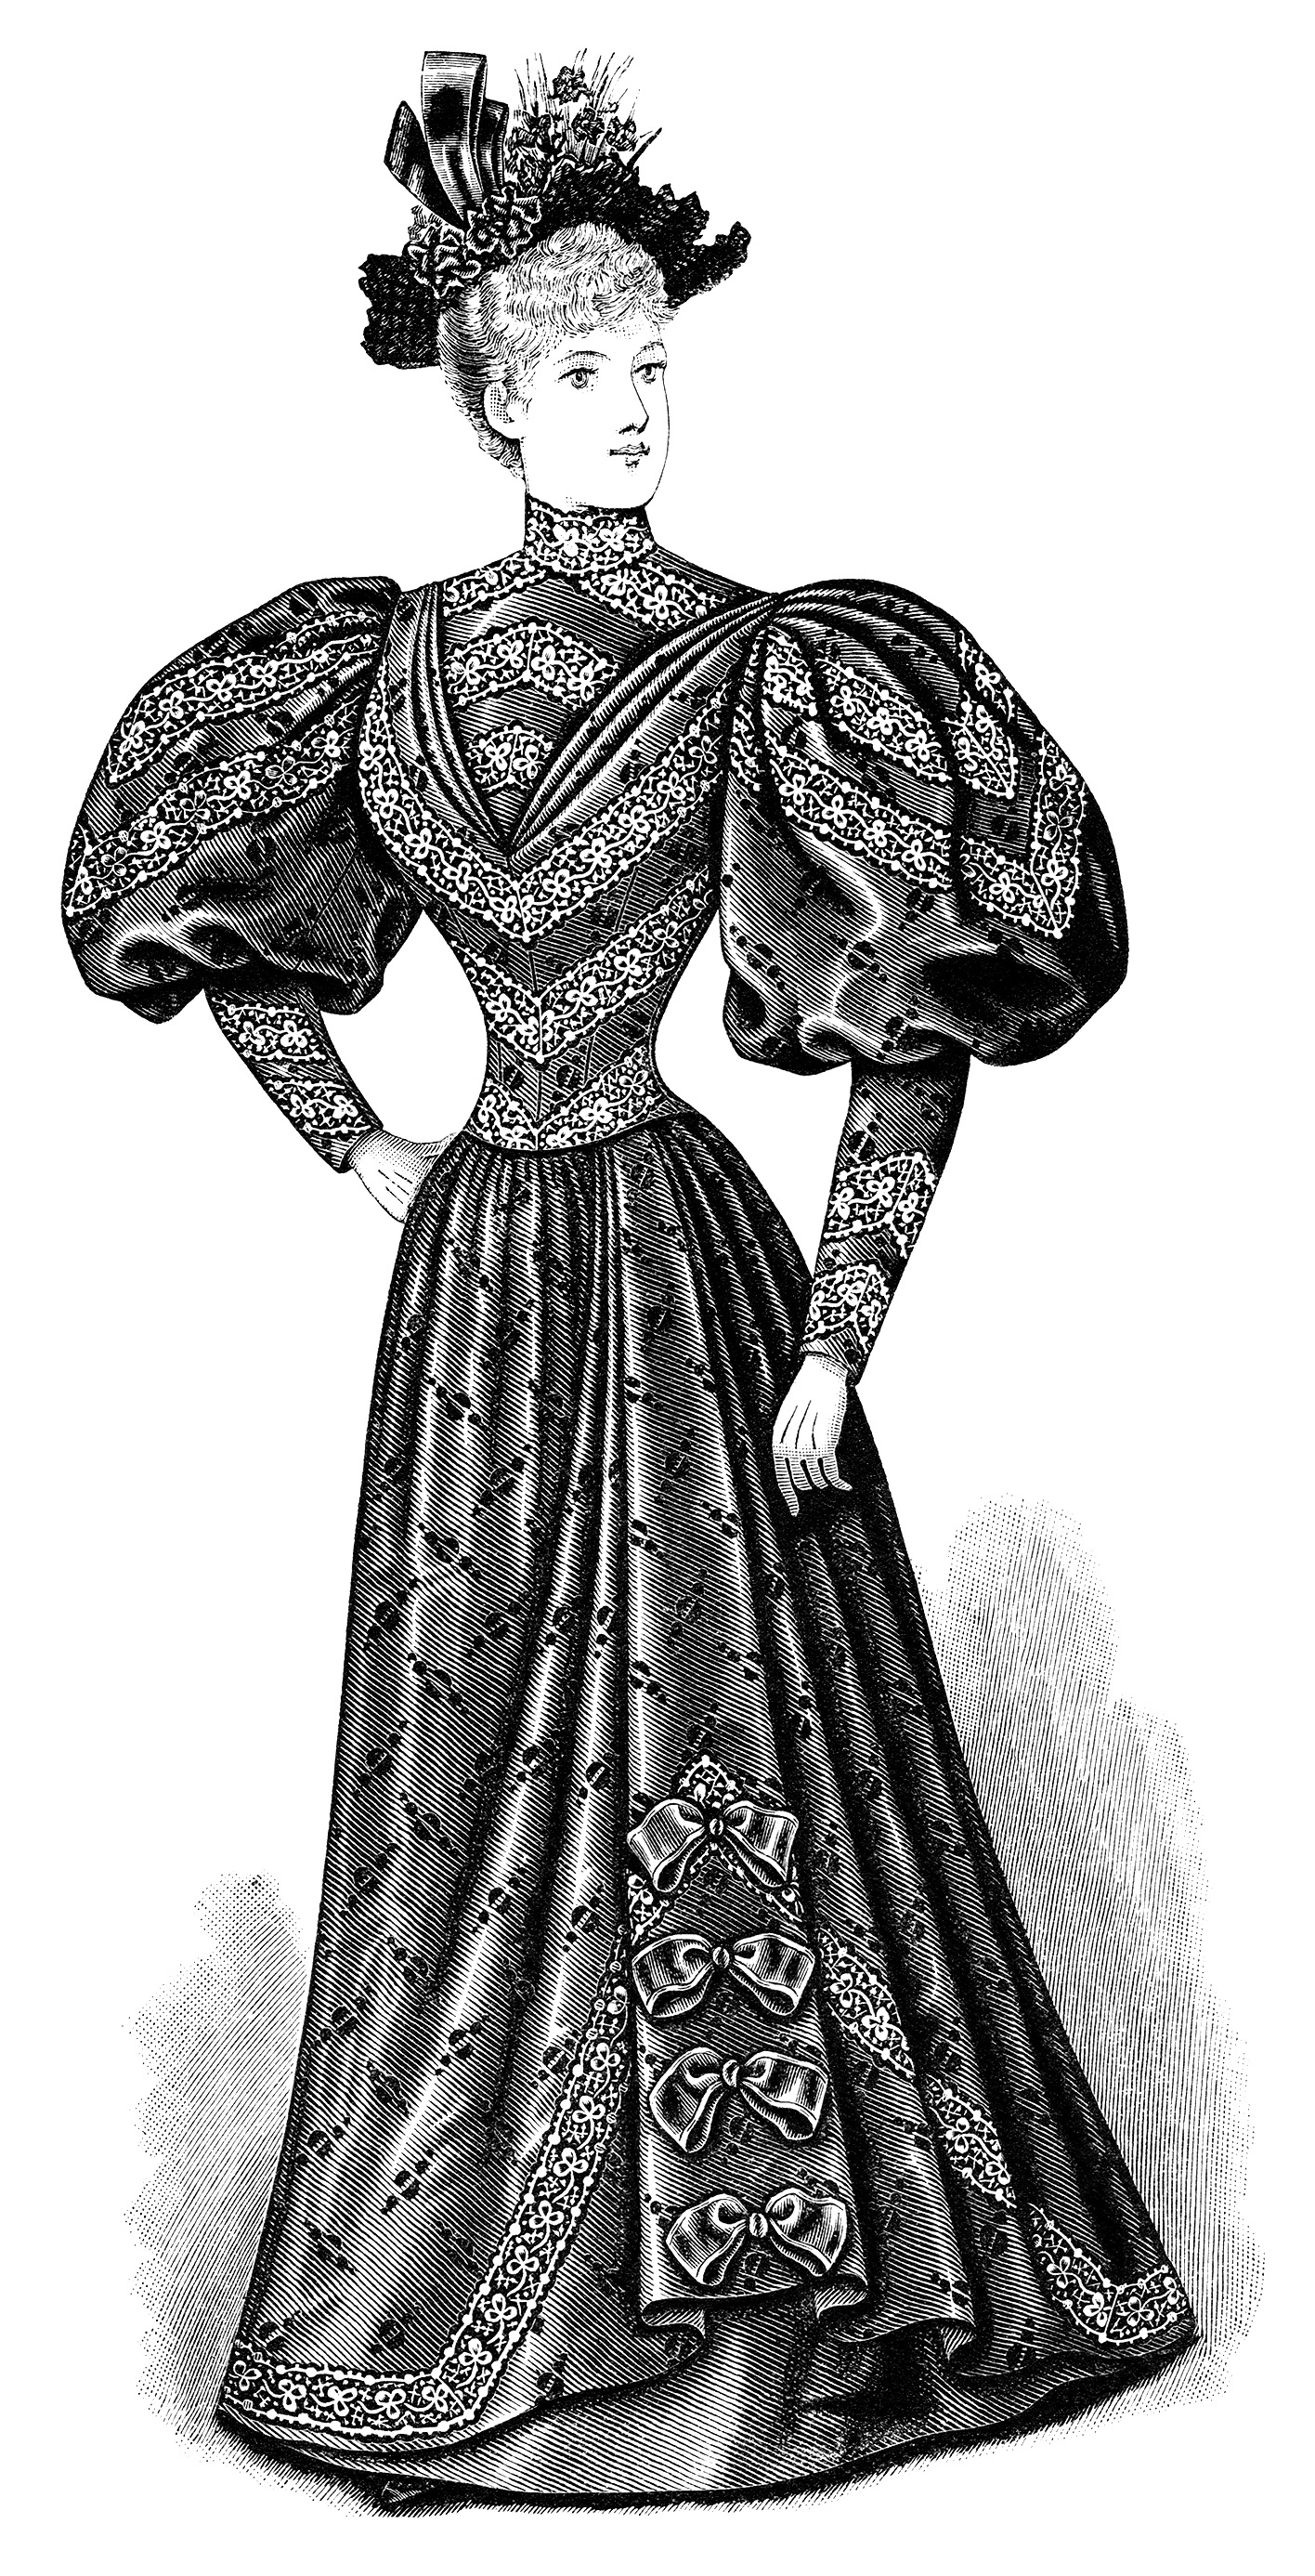 black and white clip art, Edwardian fashion, vintage dress clipart, Victorian lady, Victorian gown image, antique clothing for women